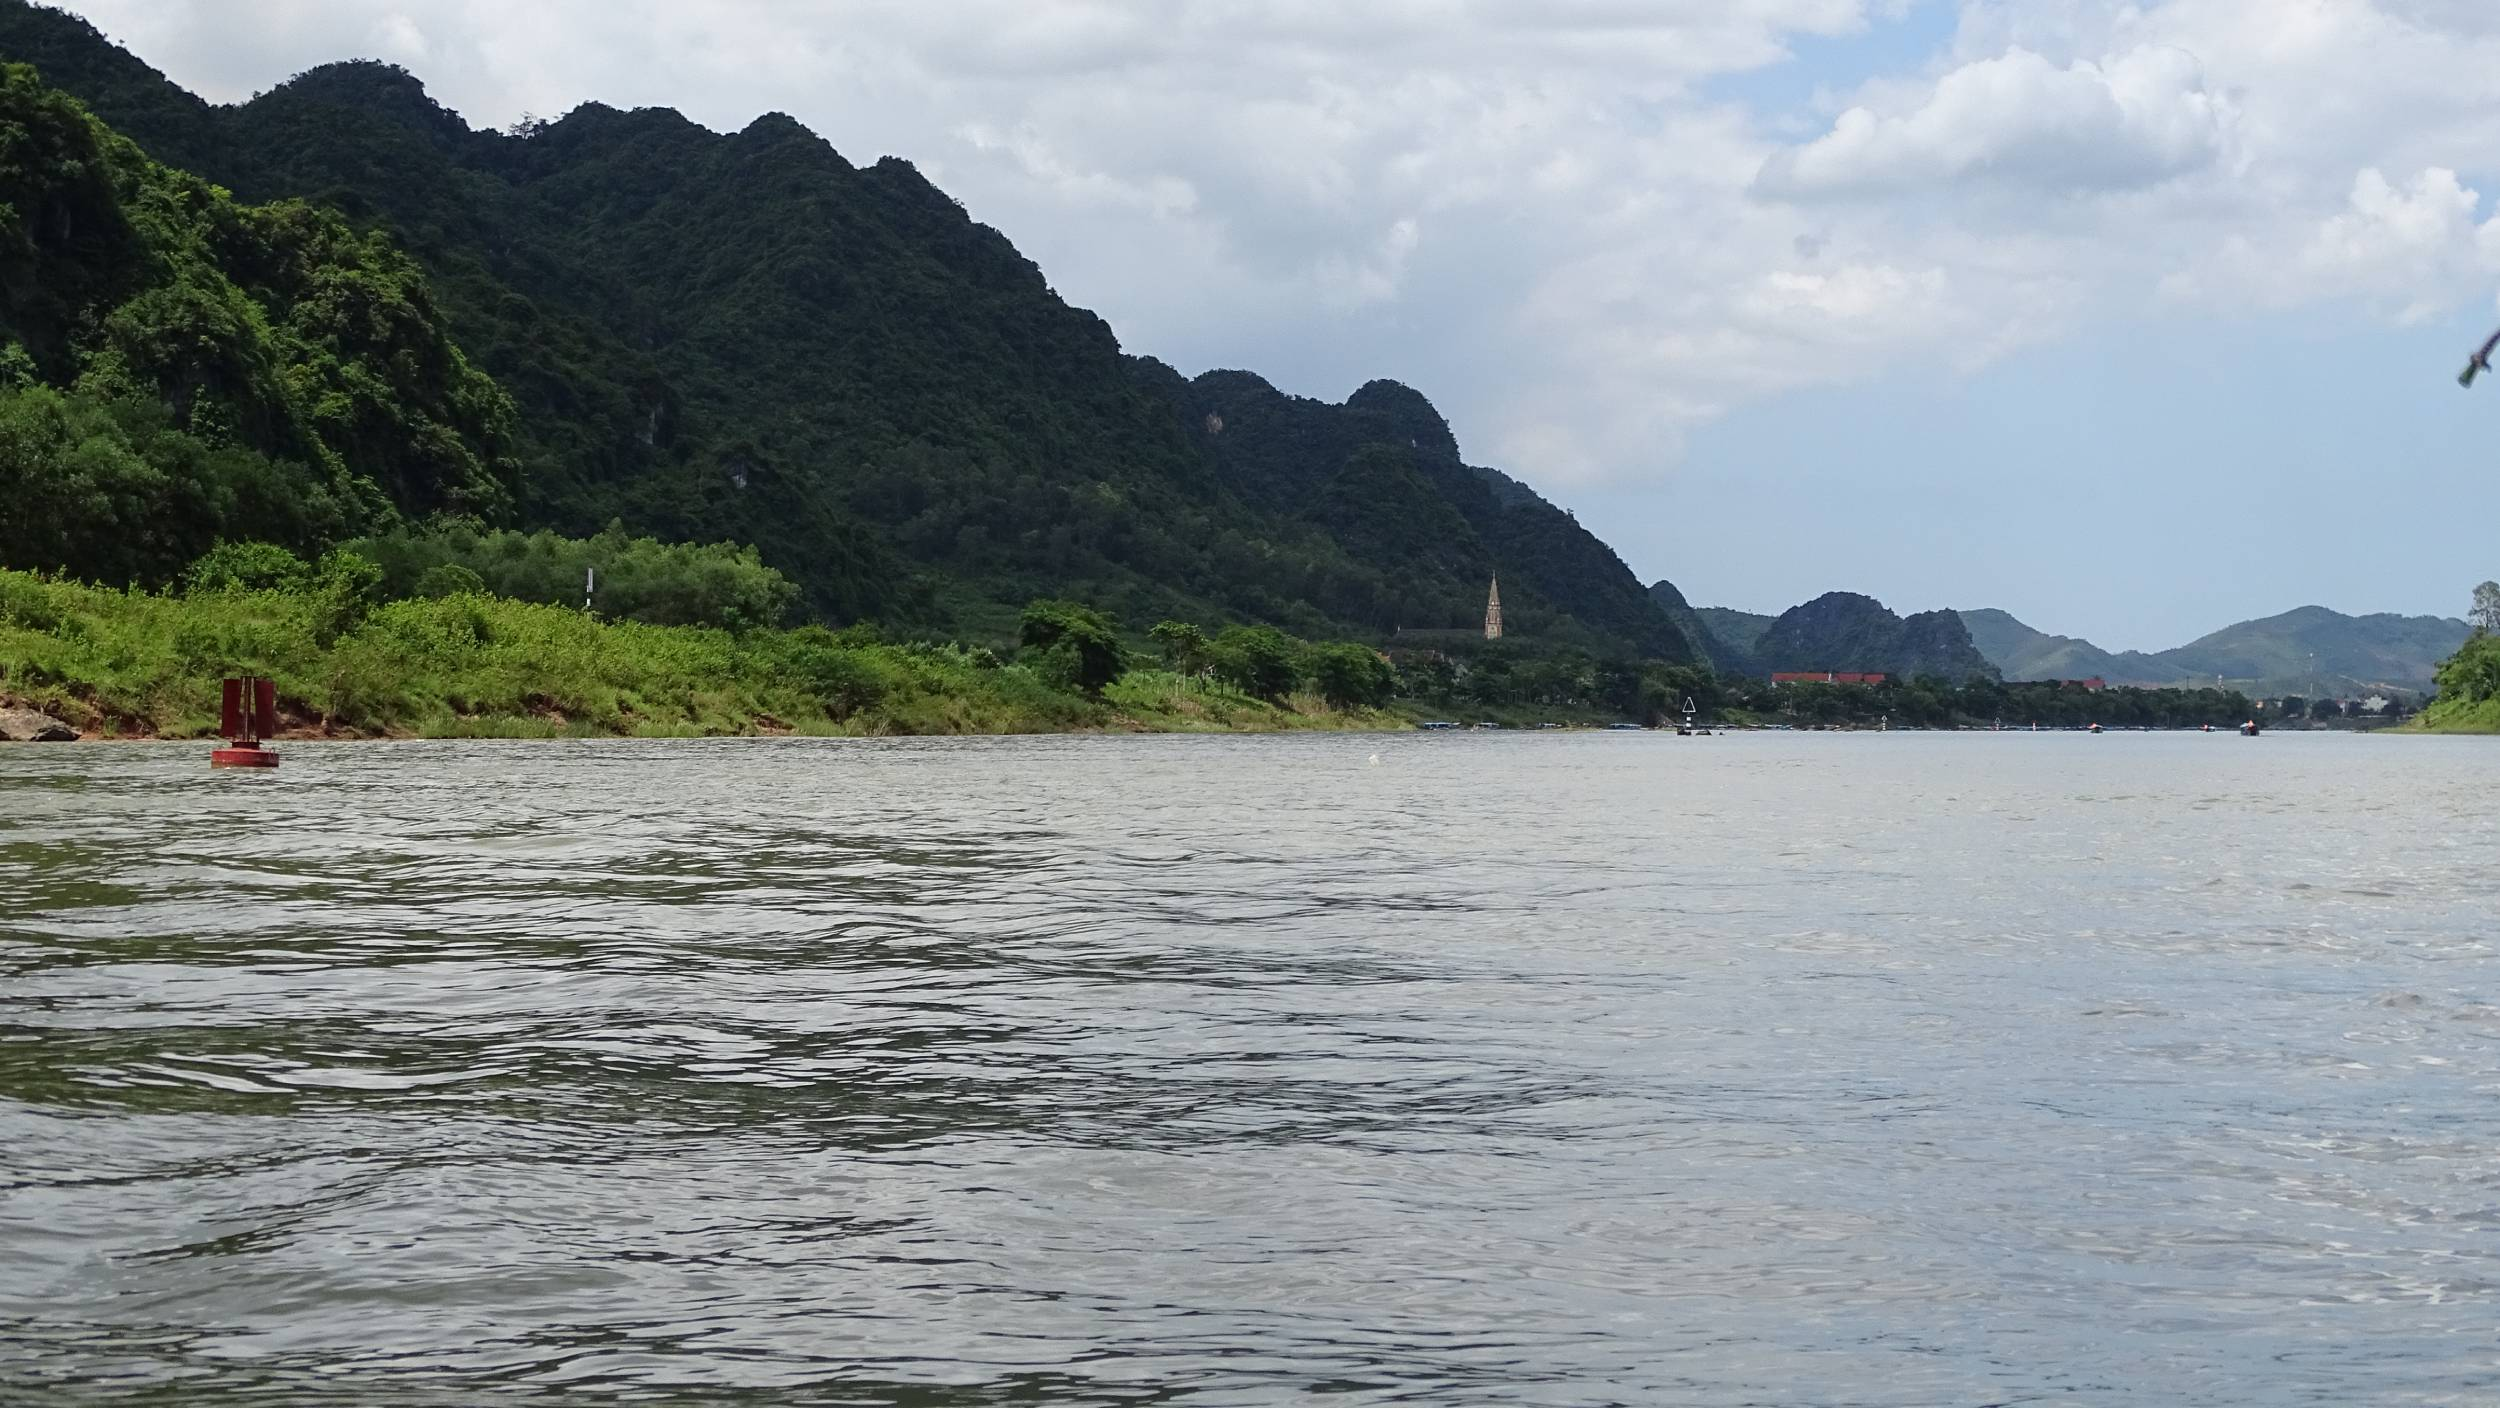 The view of the river and the karst landscape on the boat ride towards Phong Nha Cave